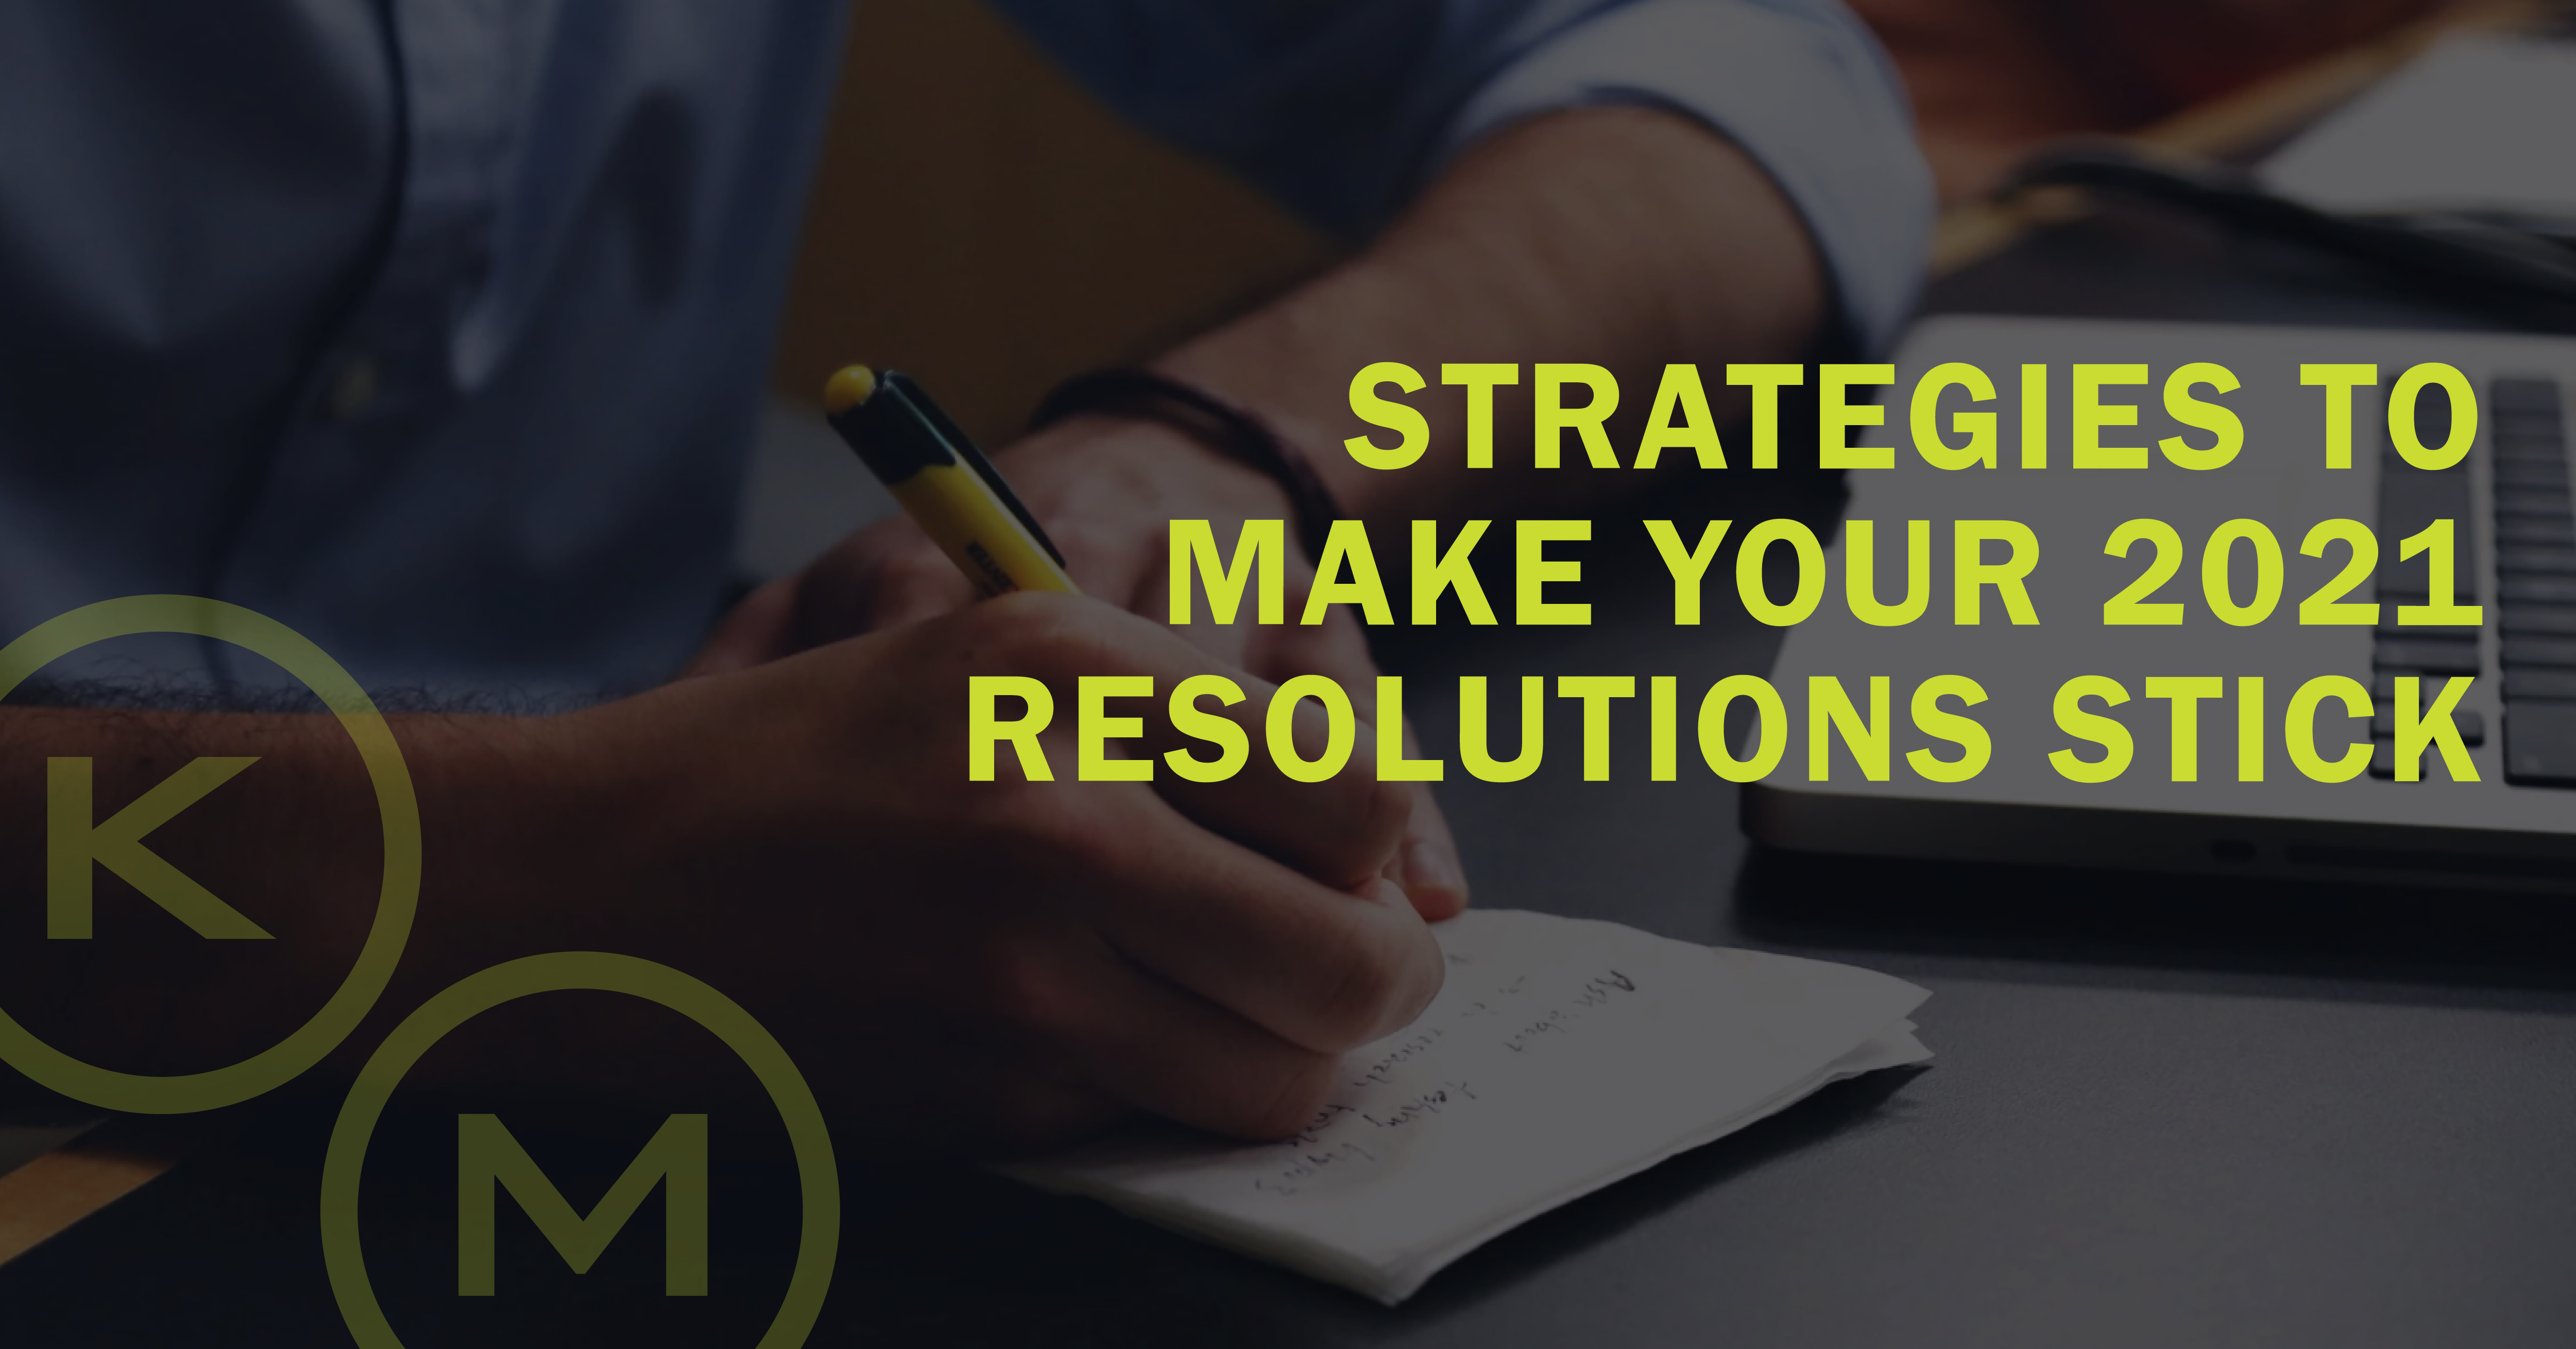 KM_strategy_resolutions-01